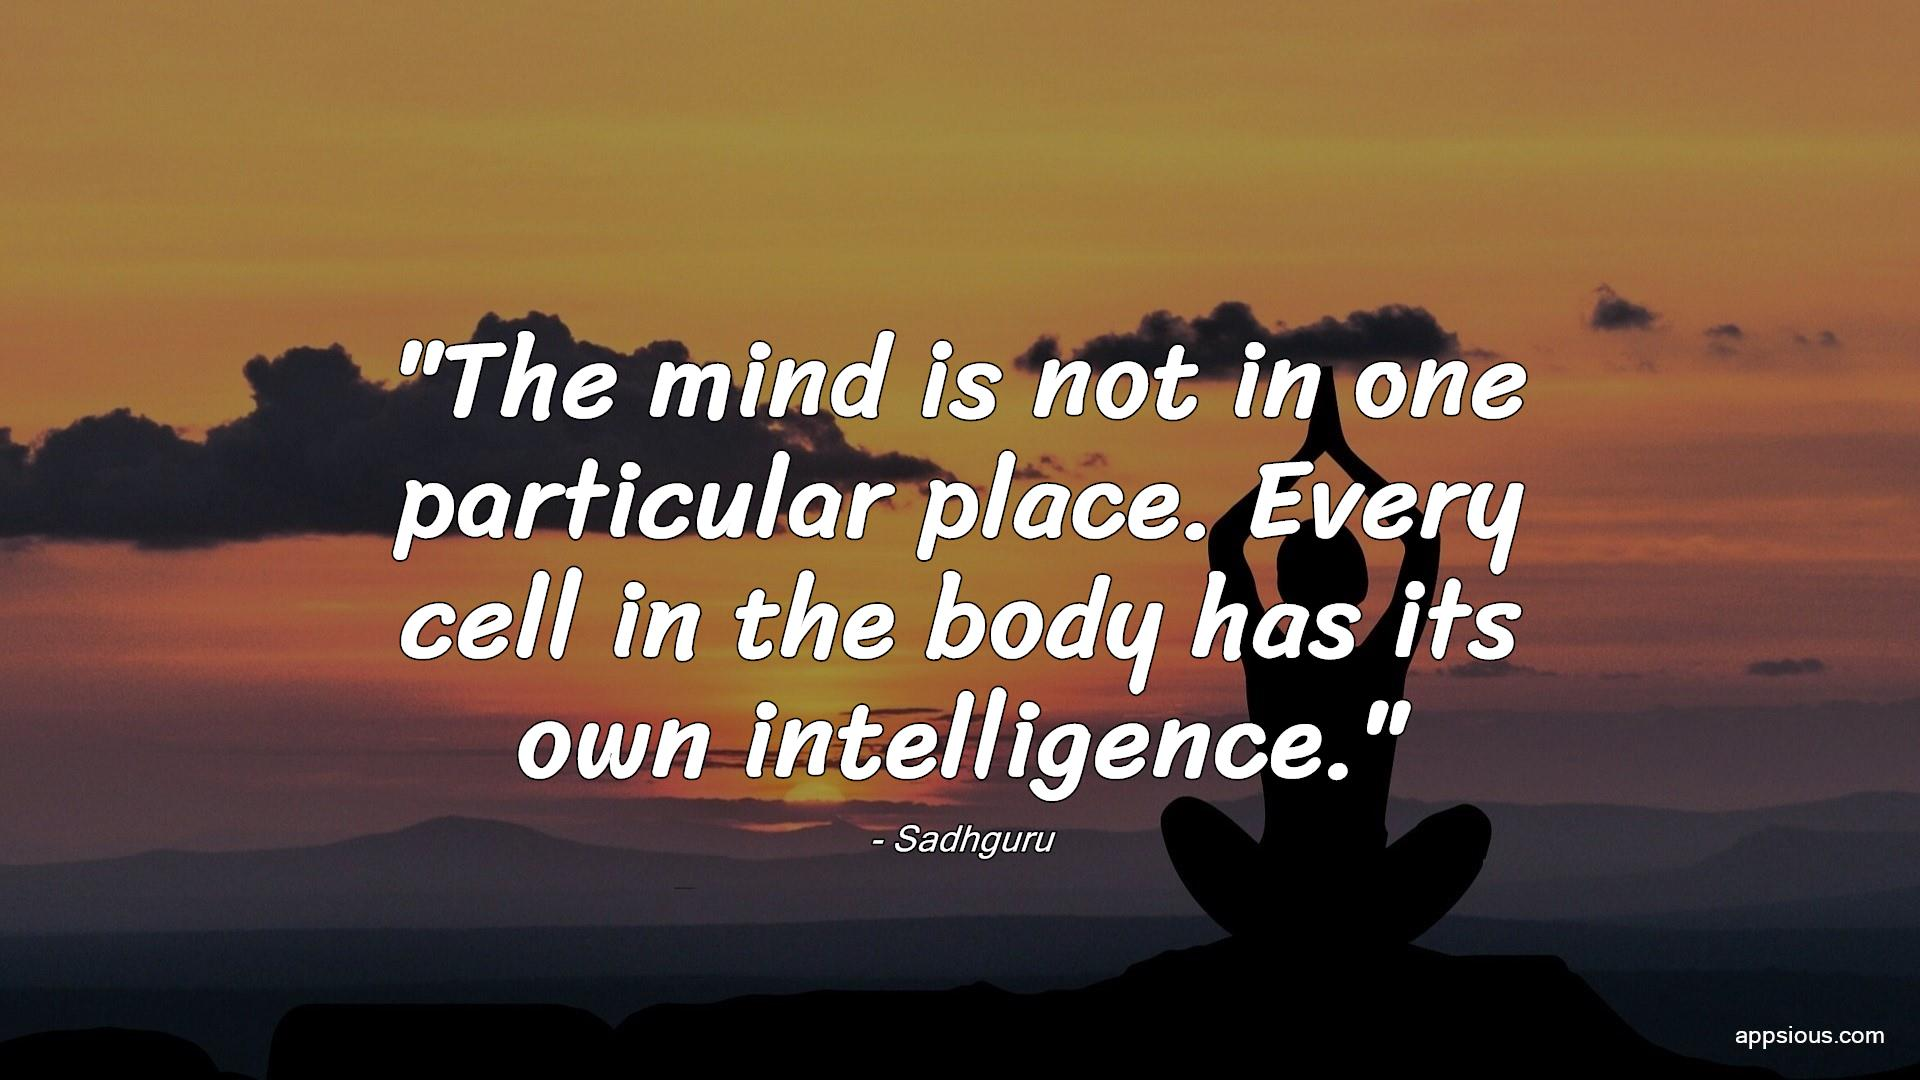 The mind is not in one particular place. Every cell in the body has its own intelligence.